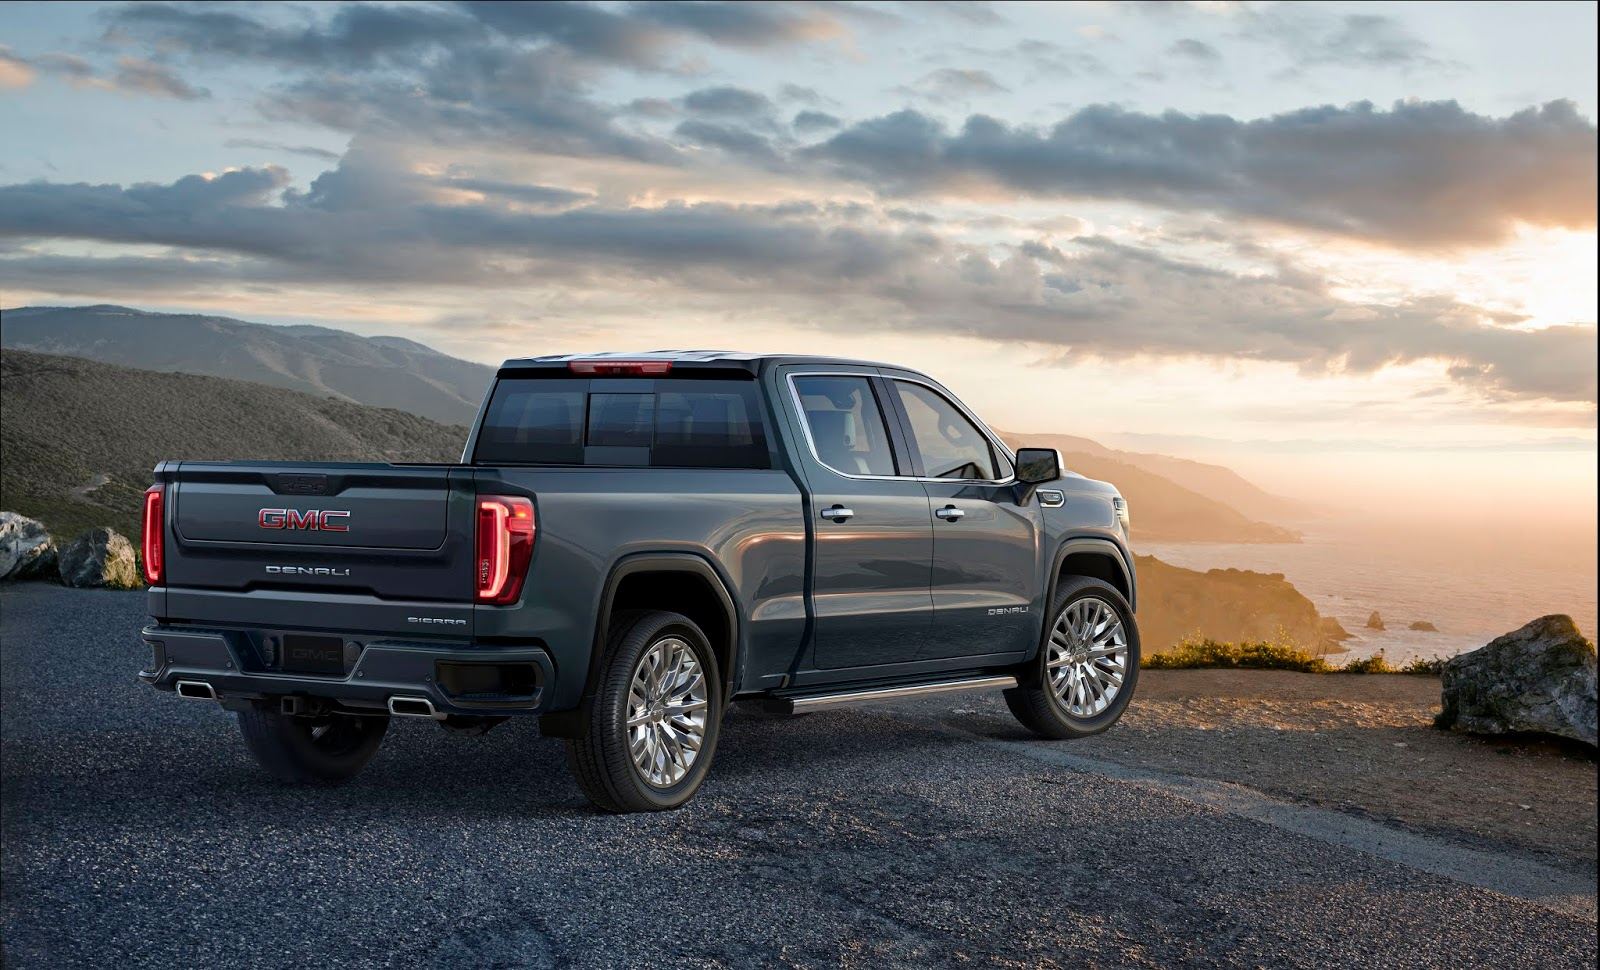 Timing Is Everything: The 2019 GMC Sierra Denali 1500 4WD